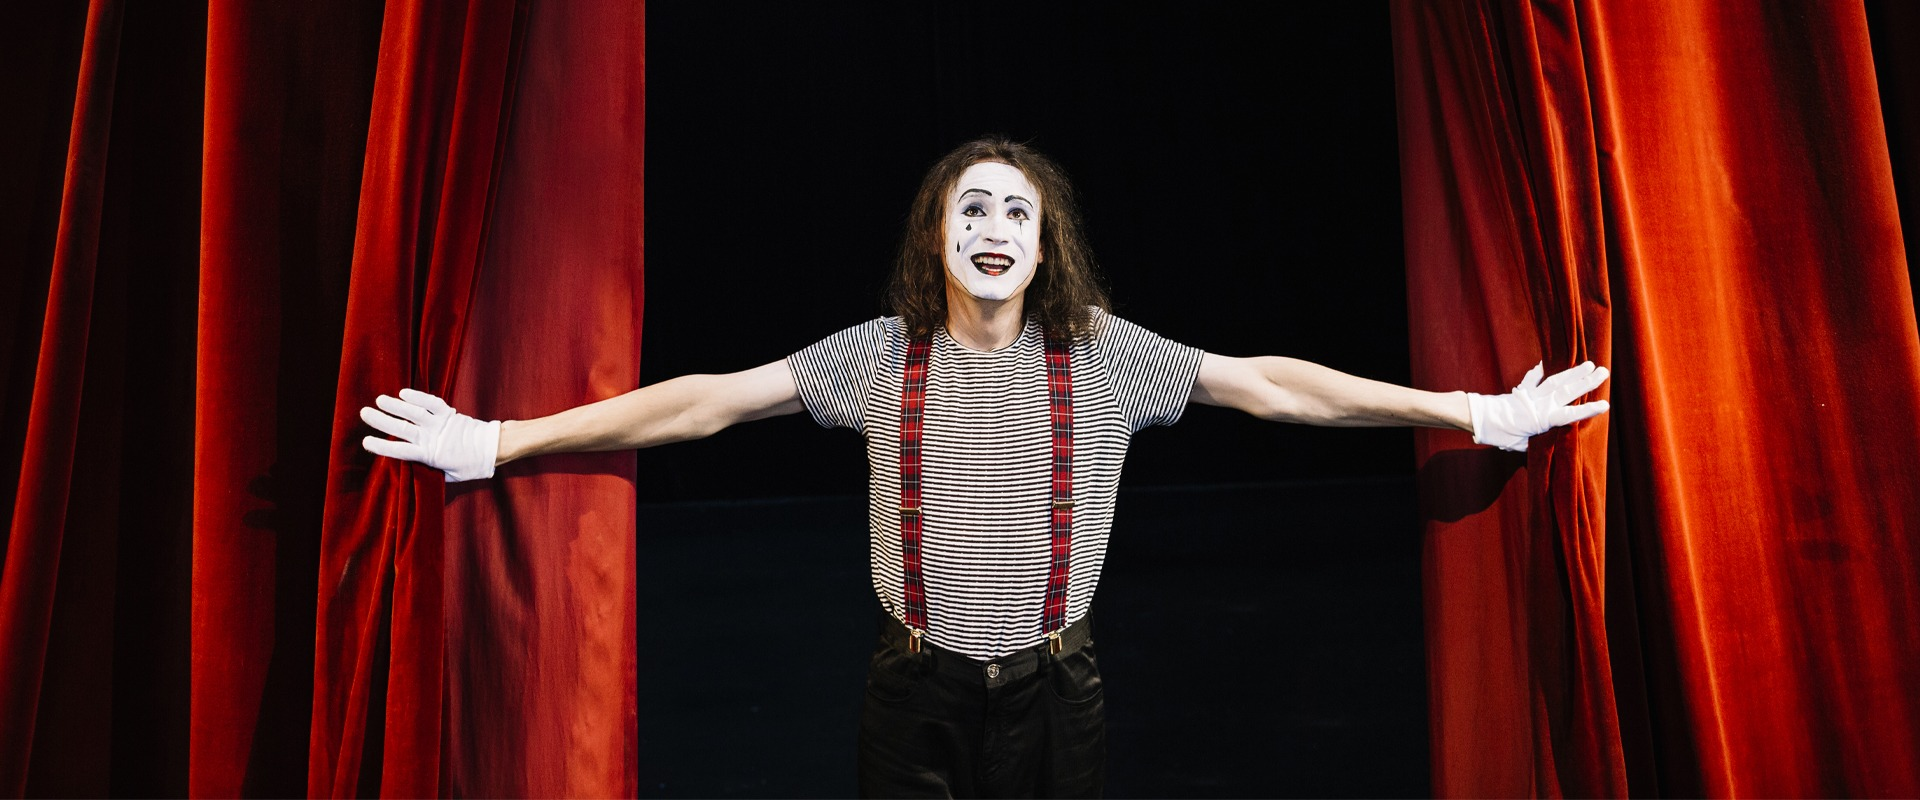 Actor masked as Pierrot open the red curtains and enters the stage